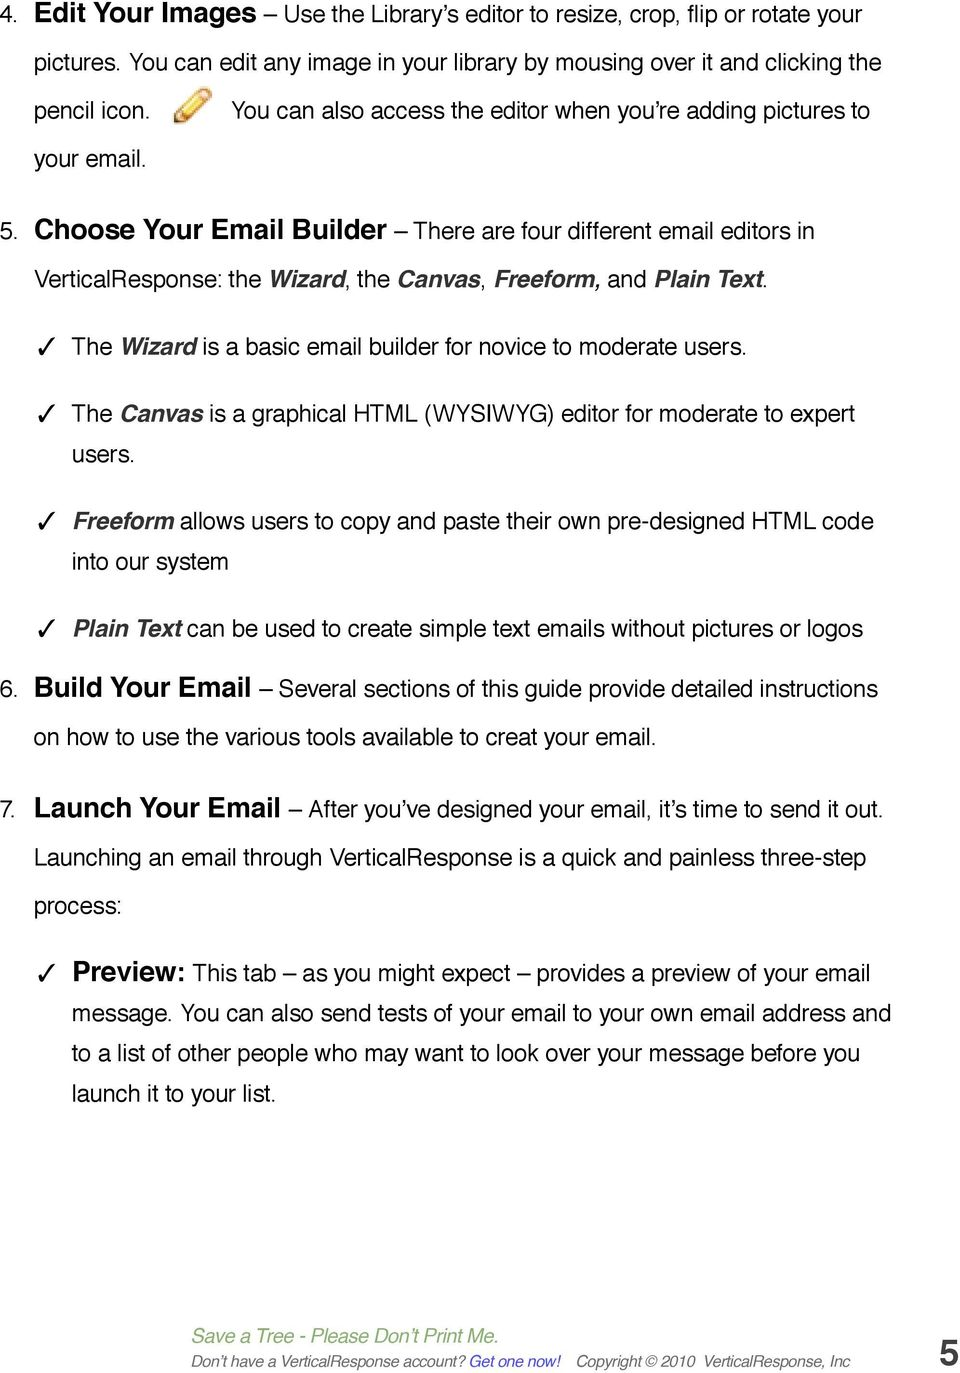 Choose Your Email Builder There are four different email editors in VerticalResponse: the Wizard, the Canvas, Freeform, and Plain Text.